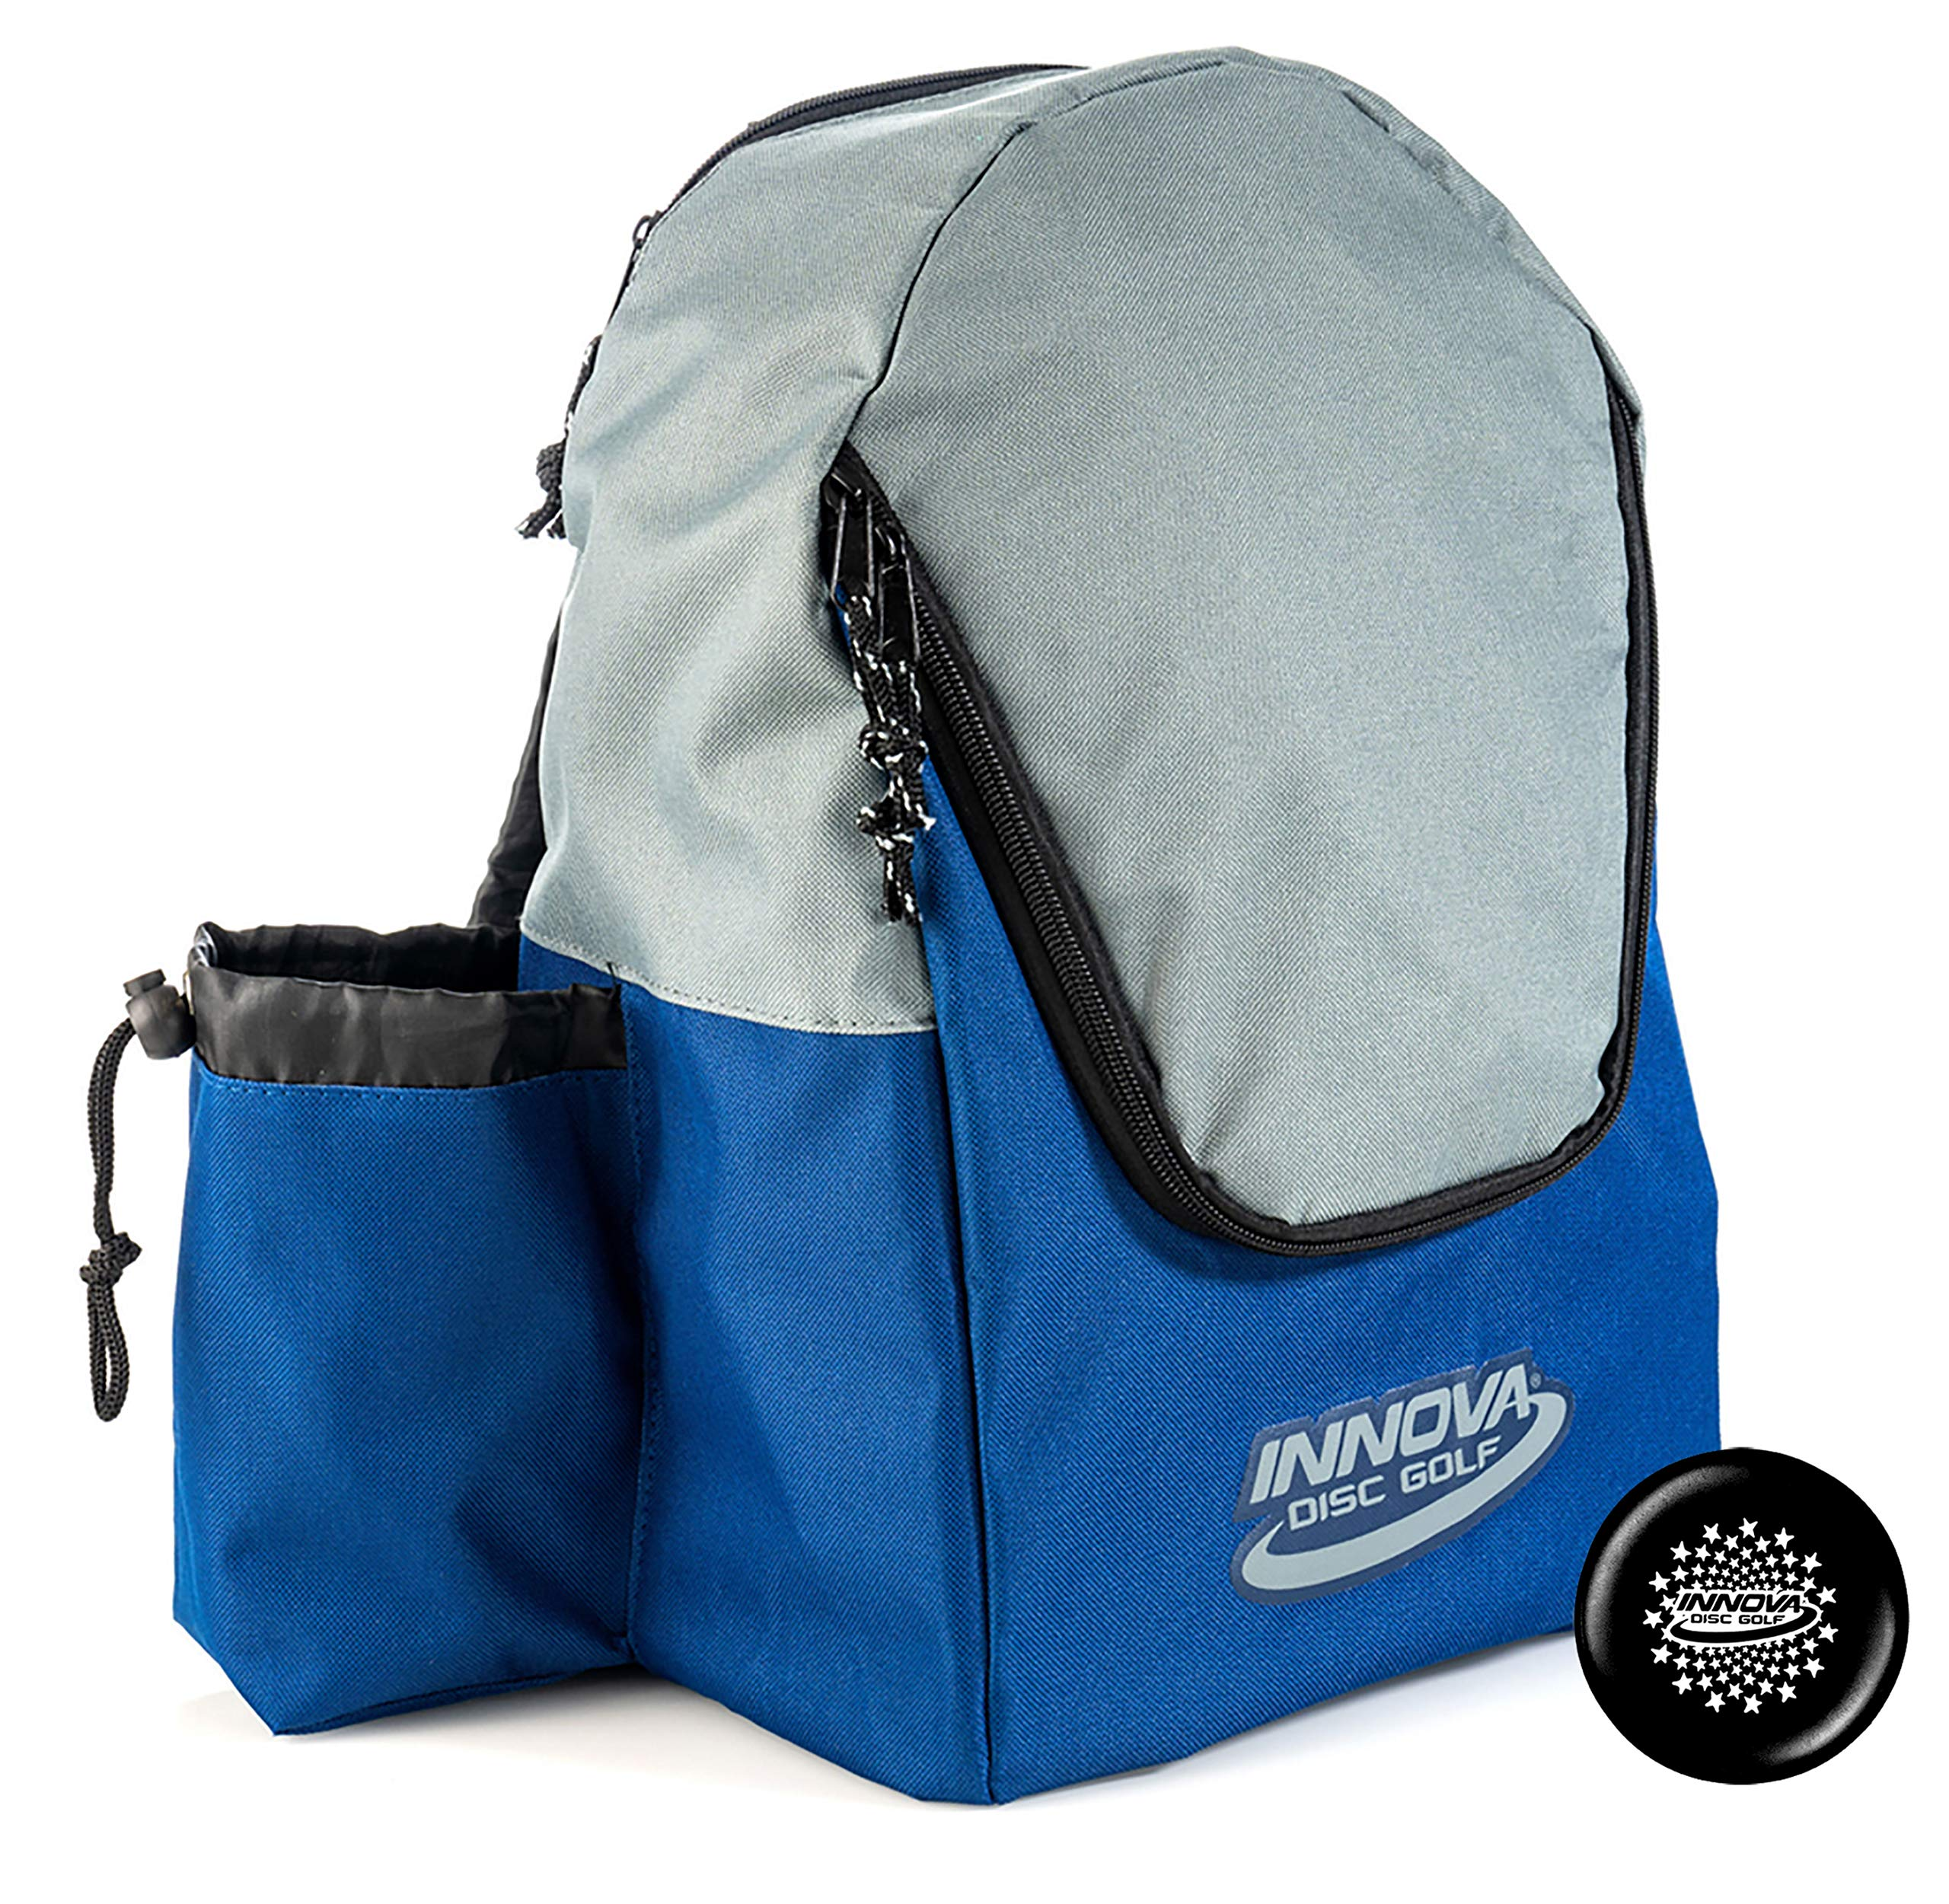 Innova Discover Pack Backpack Disc Golf Bag - Holds 15 Discs - Lightweight and Easy to Carry - Includes Innova Limited Edition Stars Mini Marker (Blue/Gray) by Innova Discs